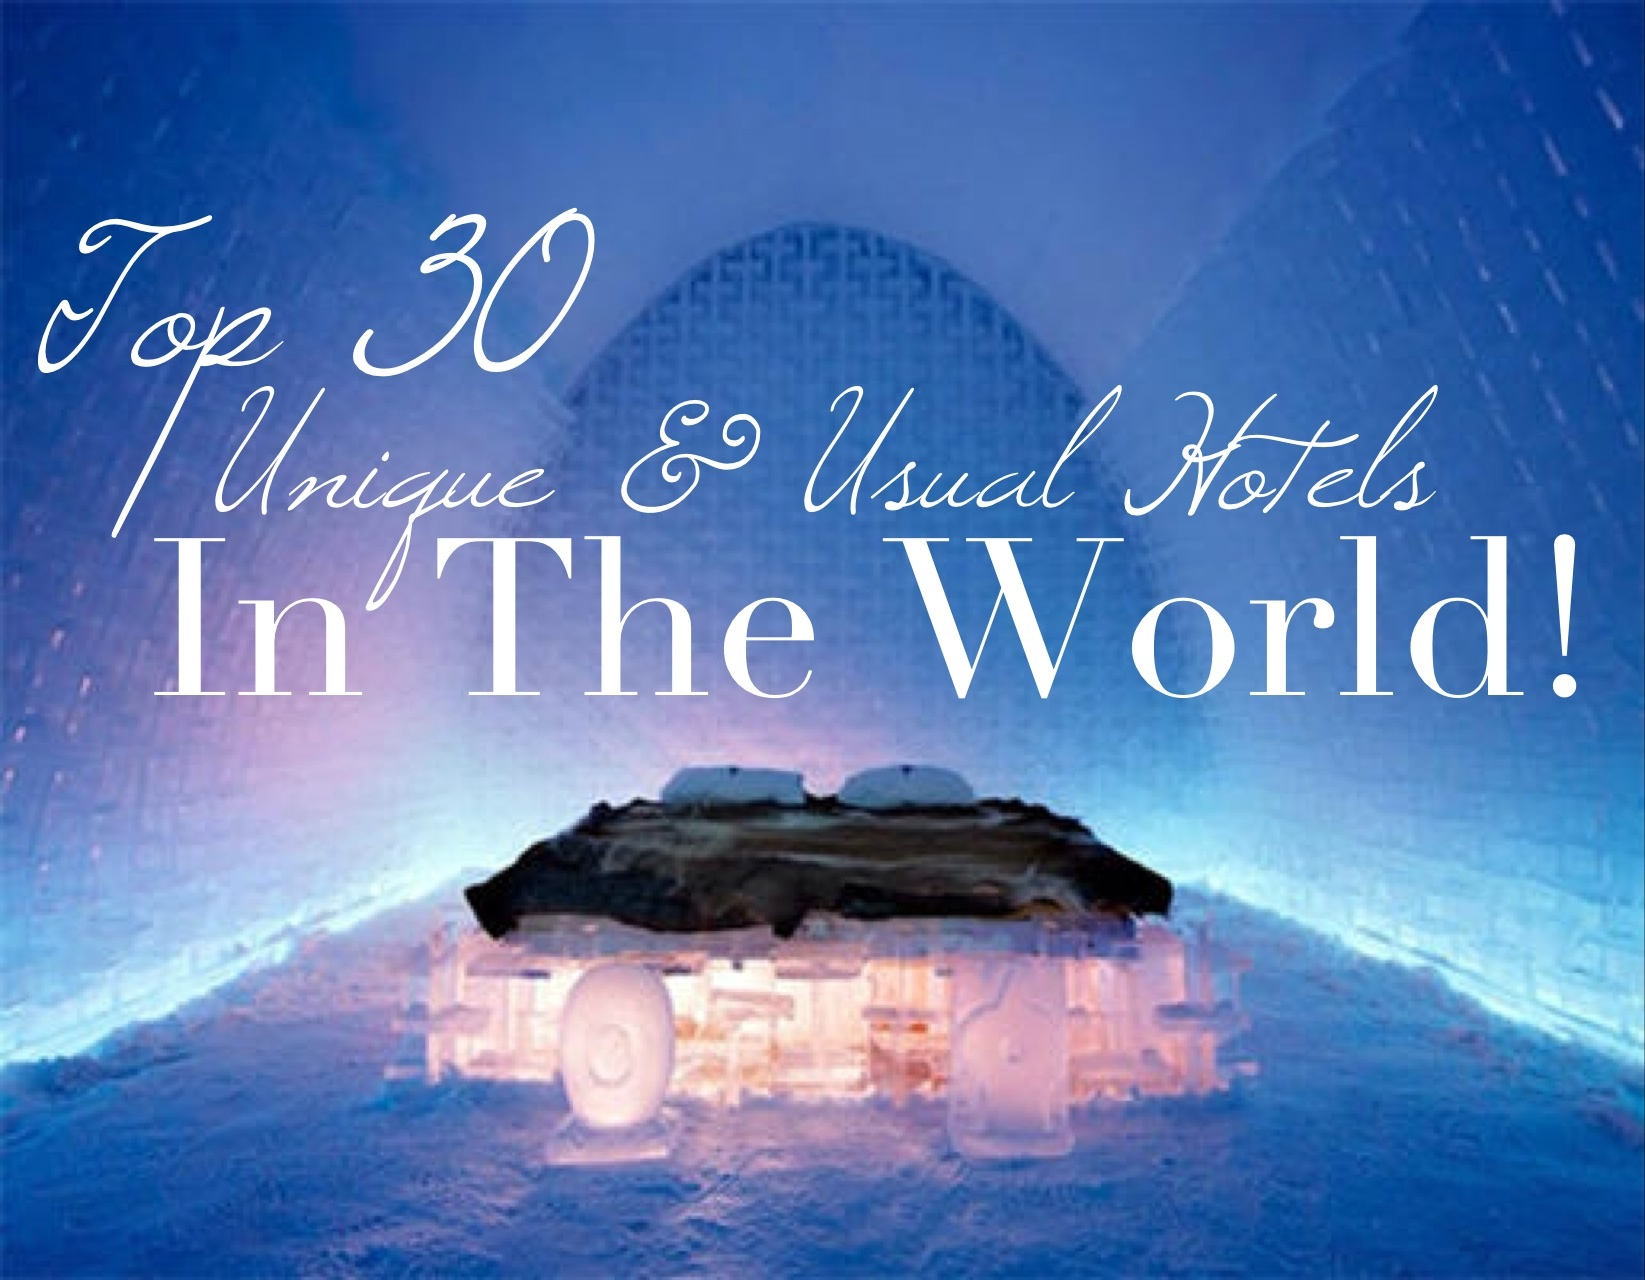 Top 30 unique unusual hotels in the world for Quirky hotels in prague